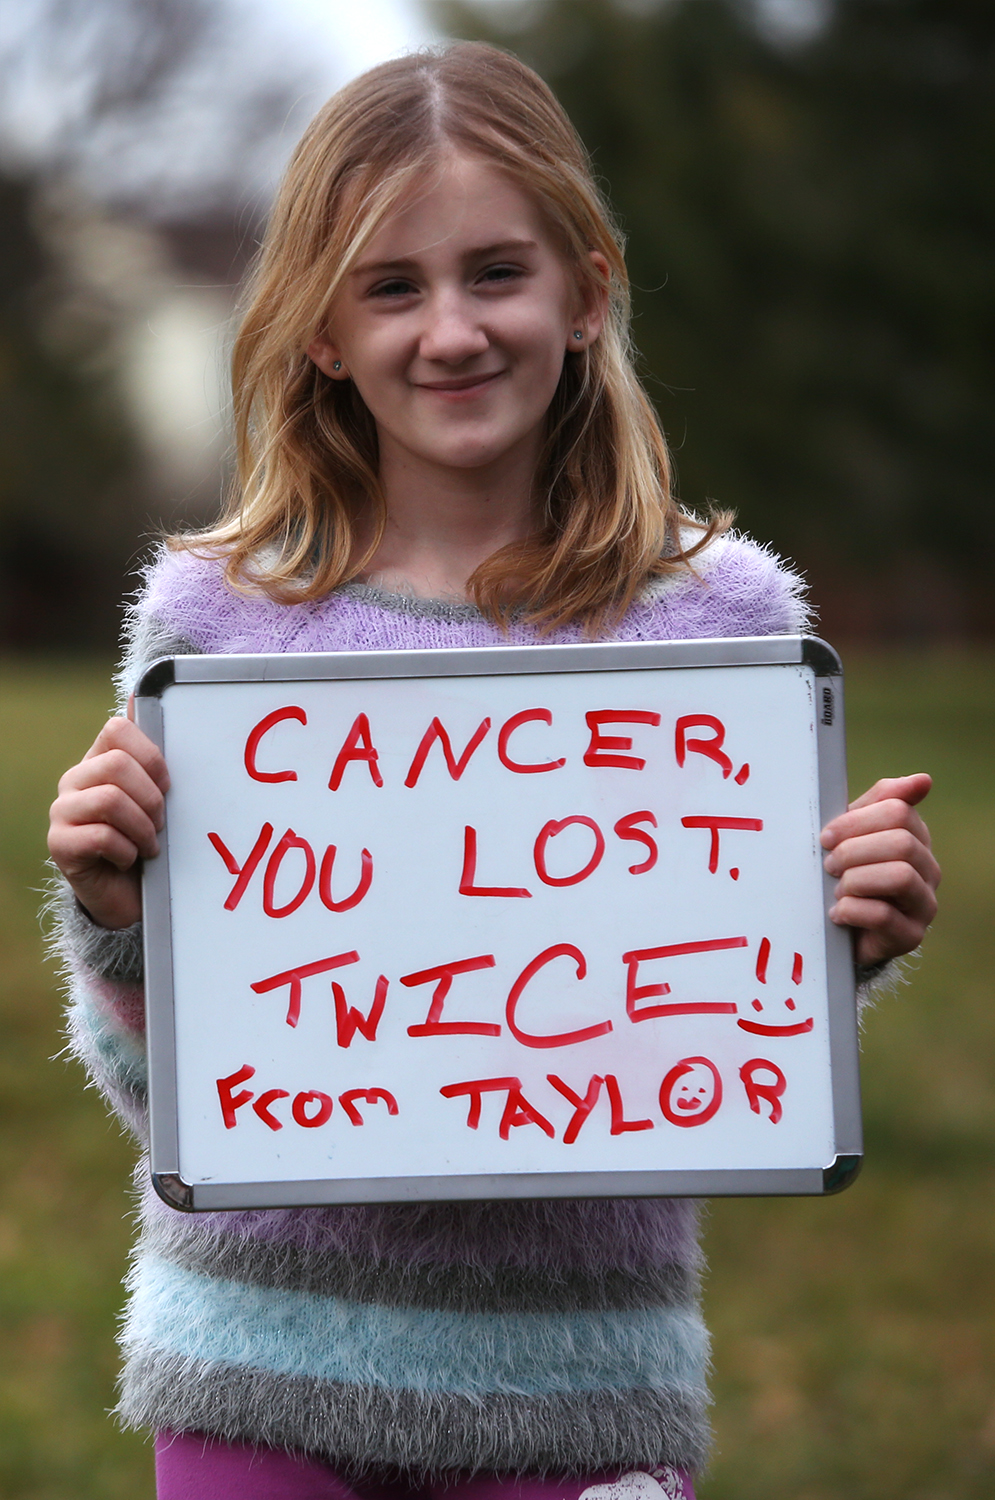 Taylor Love, cancer survivor x2